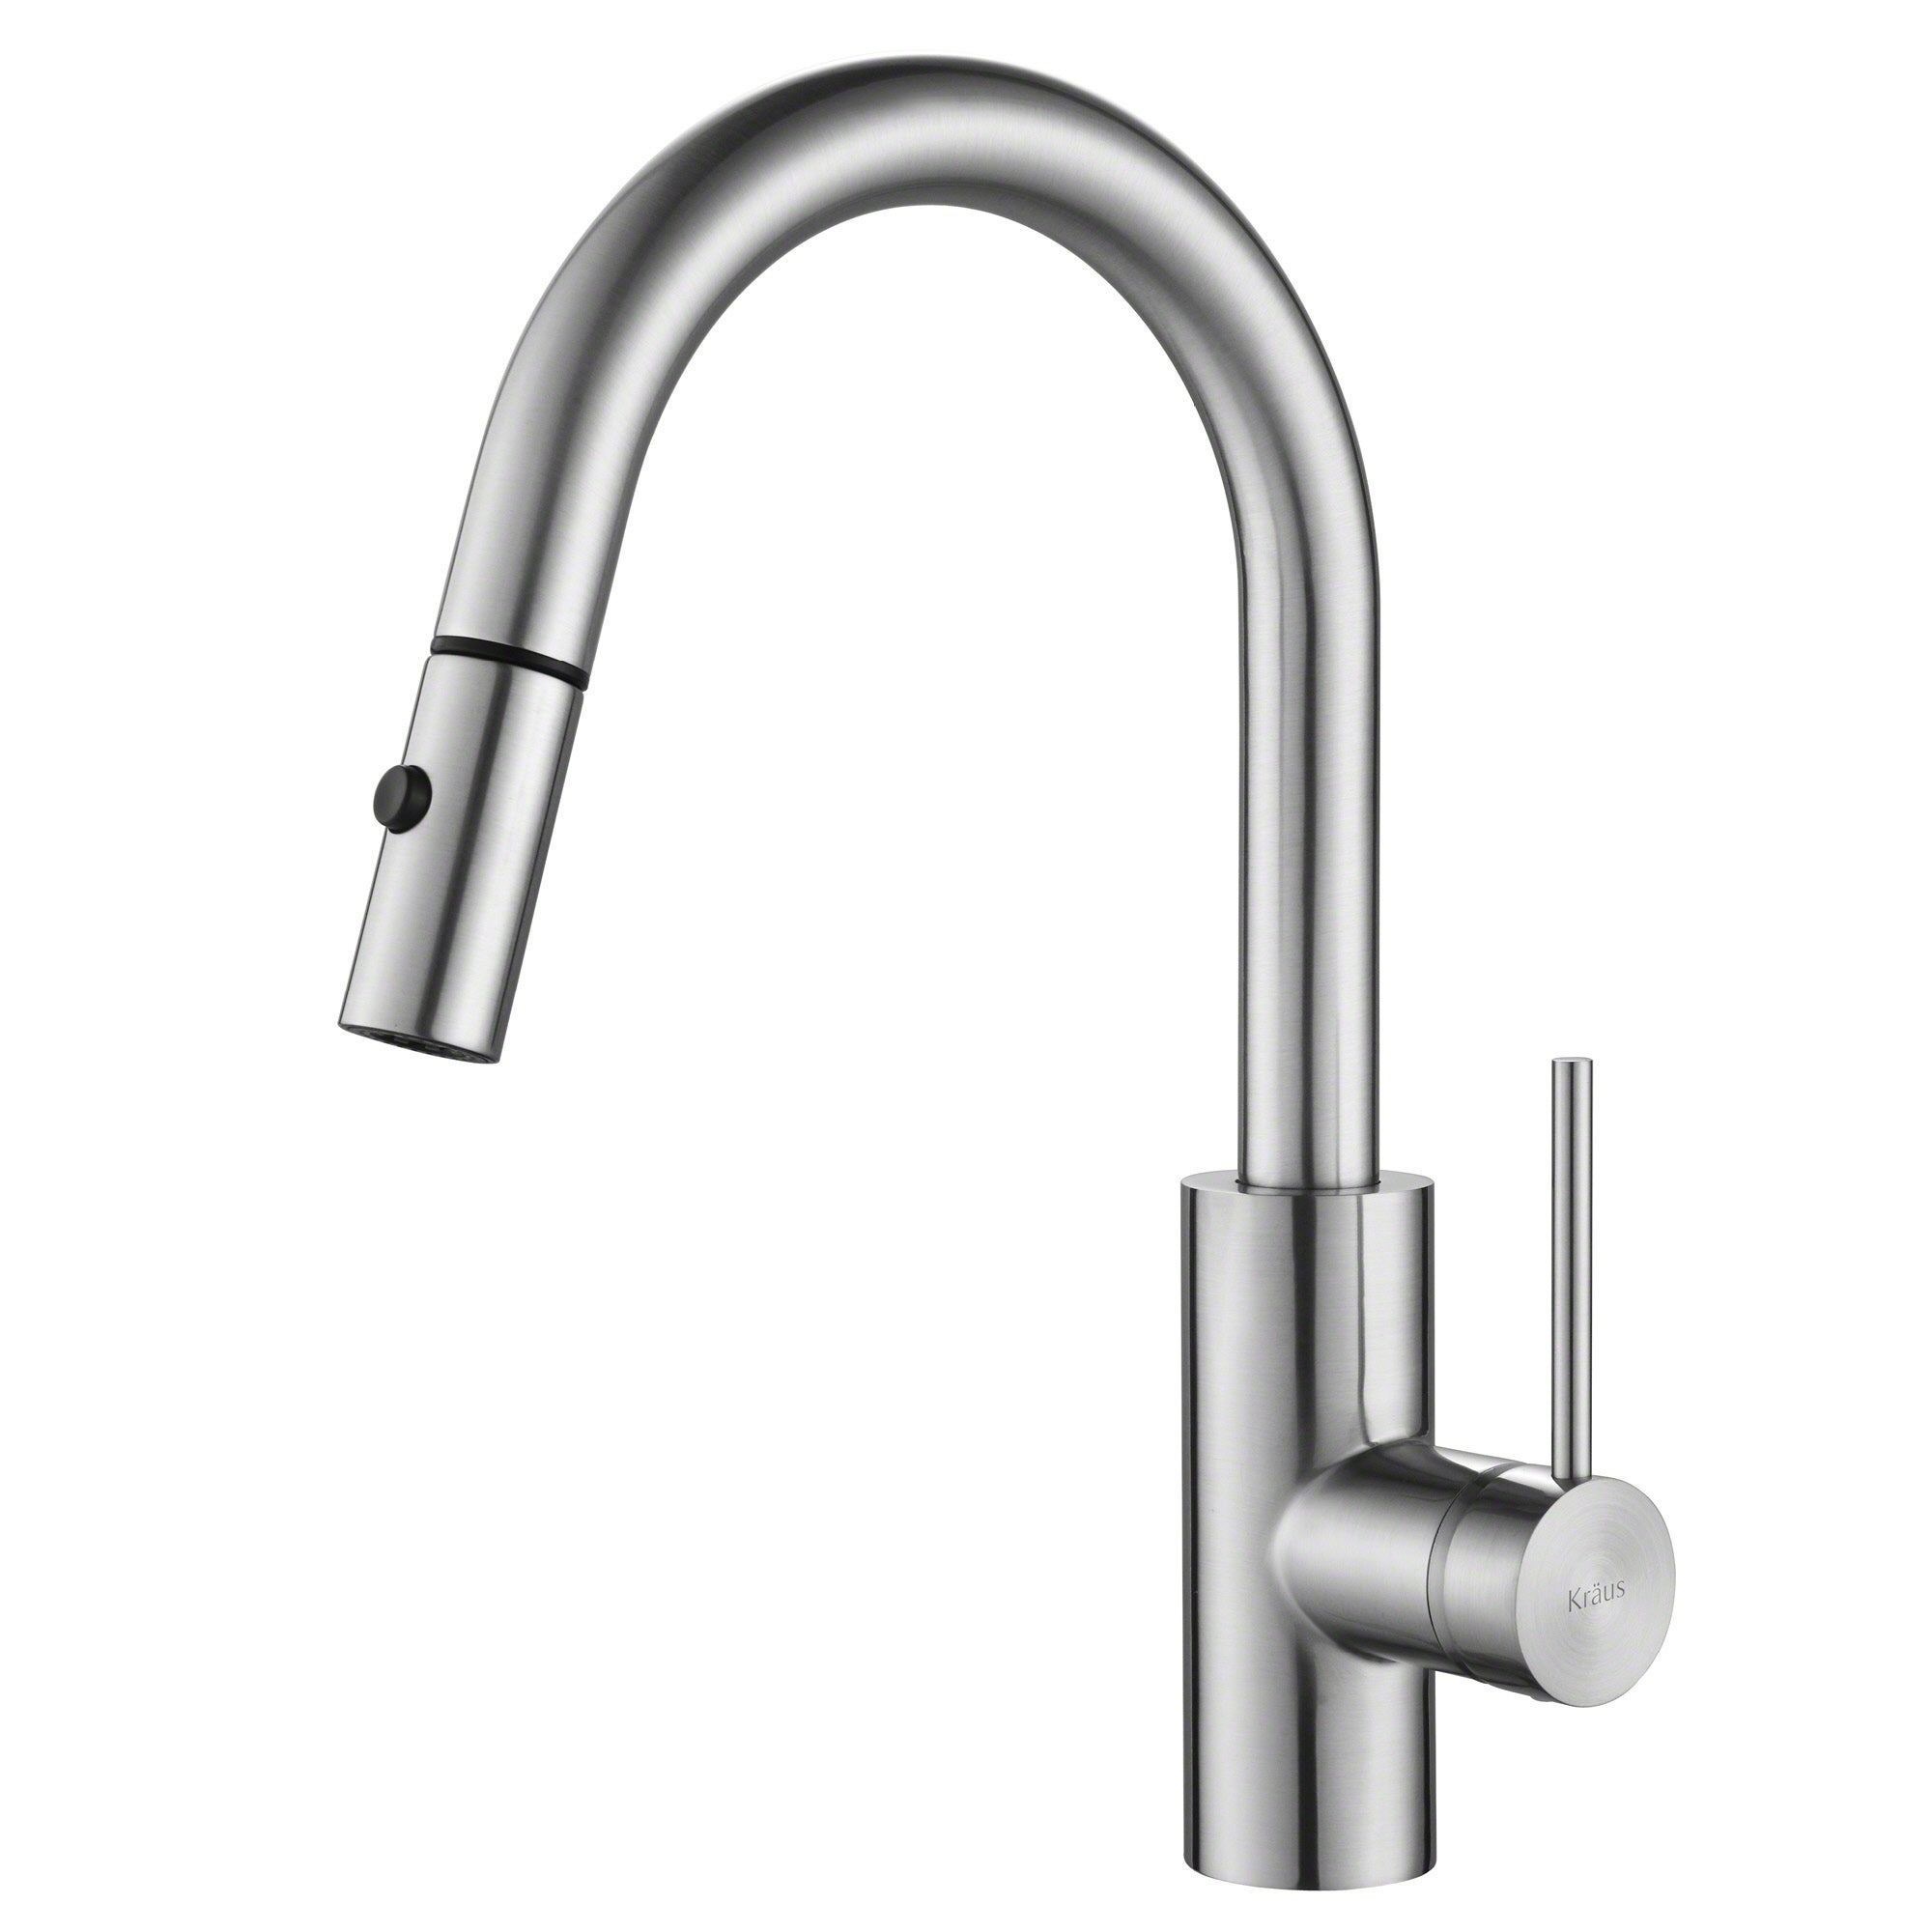 we kitchen faucet out com efficient handle pull single delta warranty water signature stainless includes dst arctic arwe lifetime